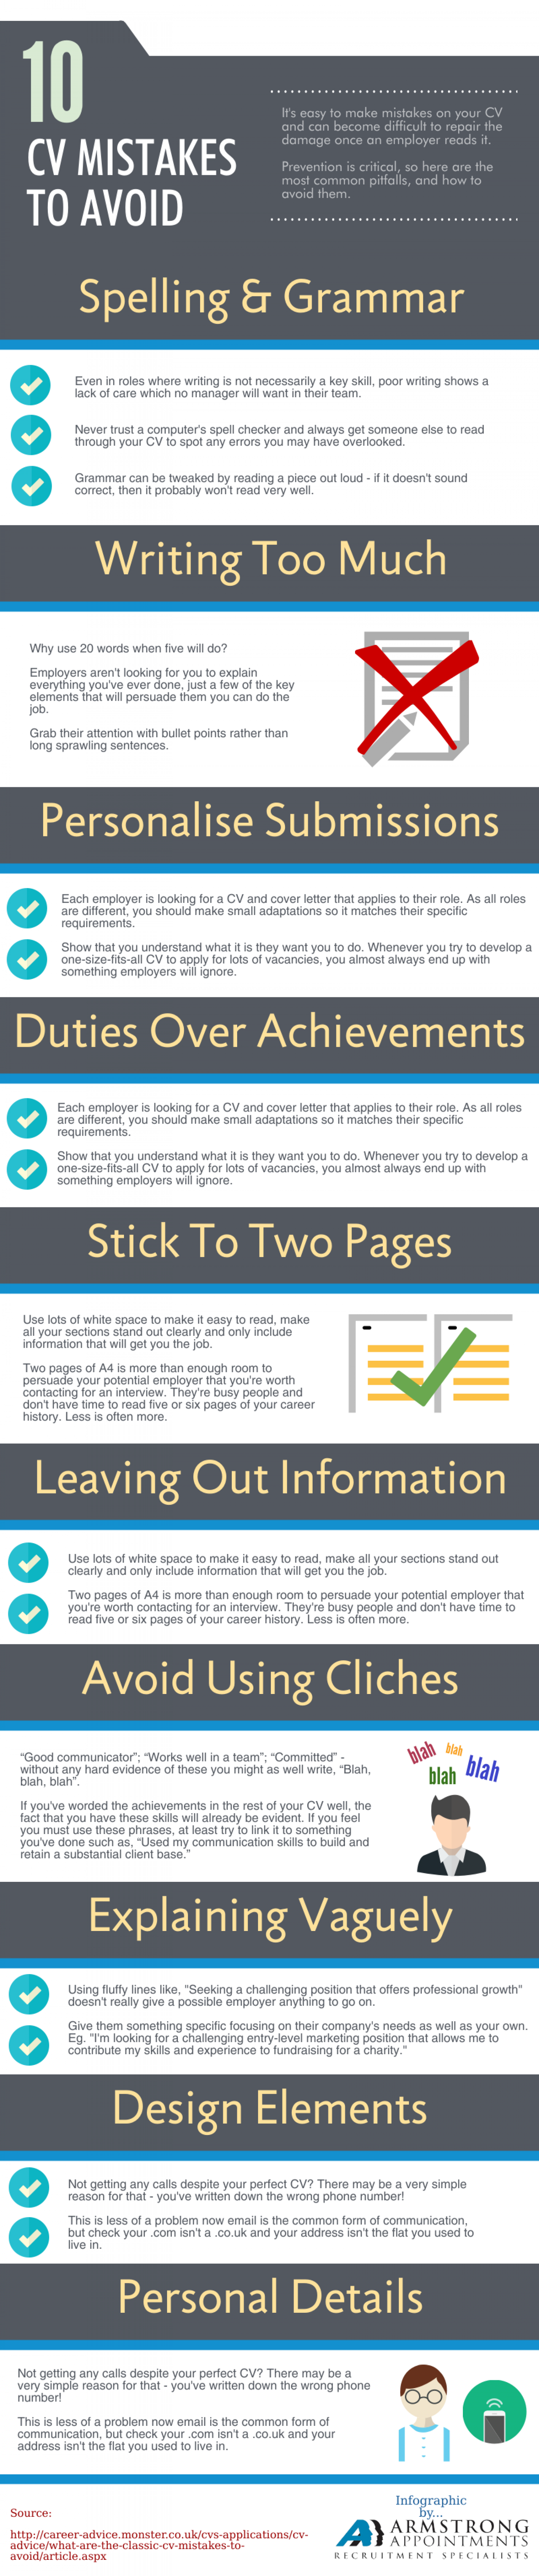 10 CV Mistakes To Avoid Infographic